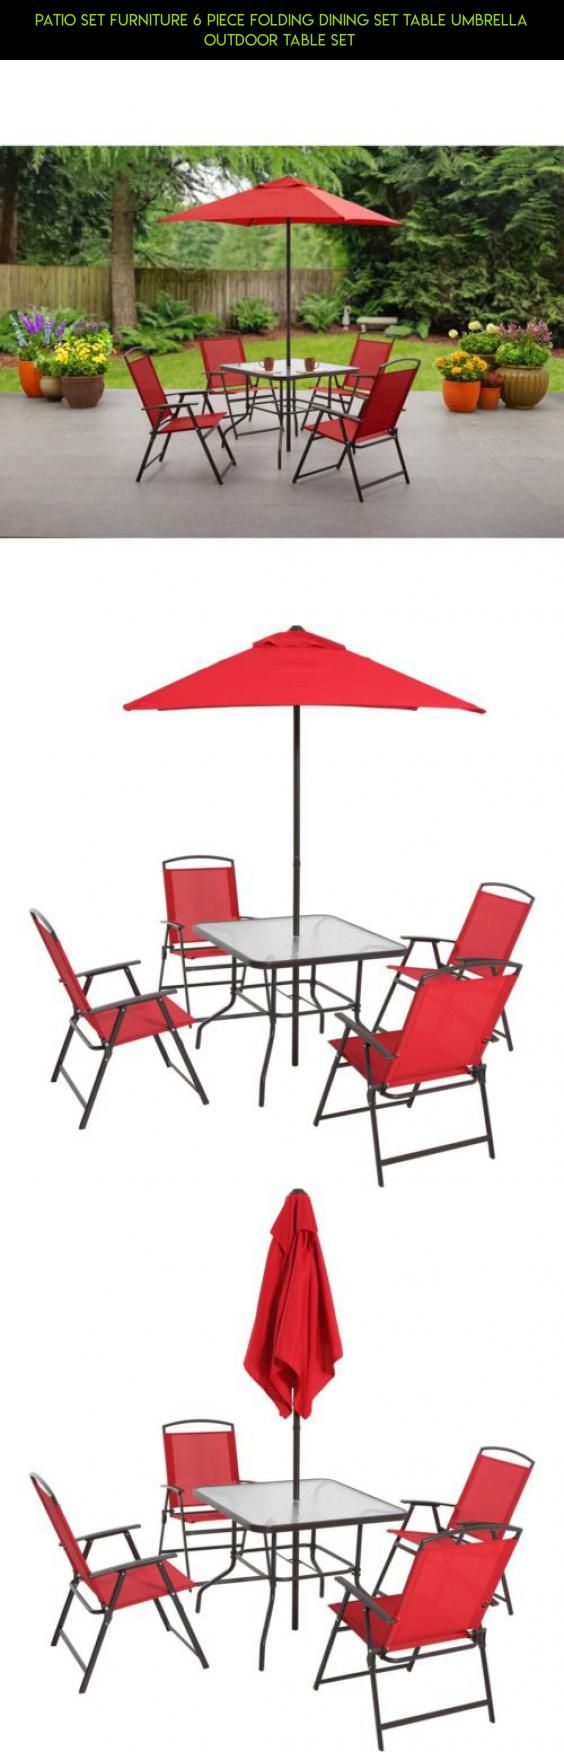 Patio Set Furniture 6 Piece Folding Dining Set Table Umbrella Outdoor Table  Set #fpv #